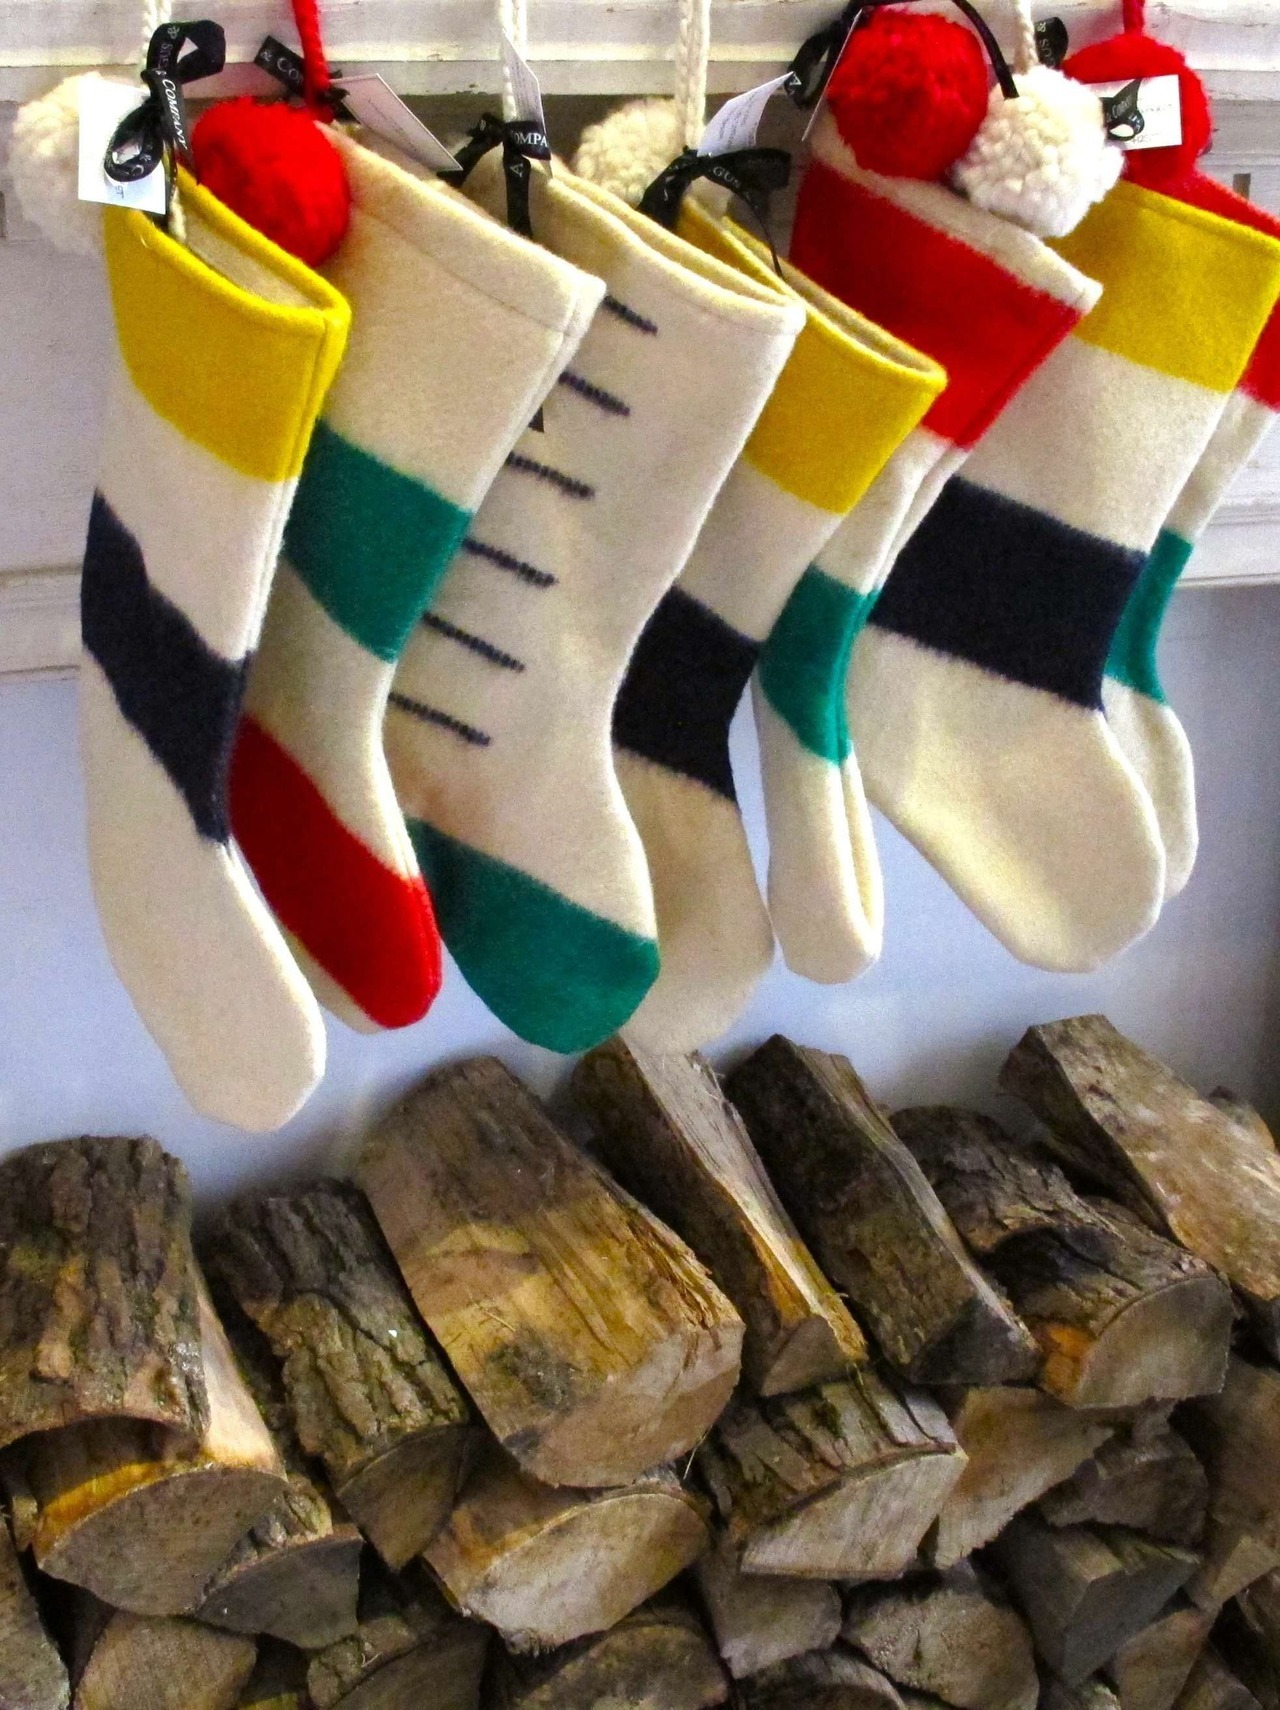 Vintage Hudson Bay Blankets made into Stockings